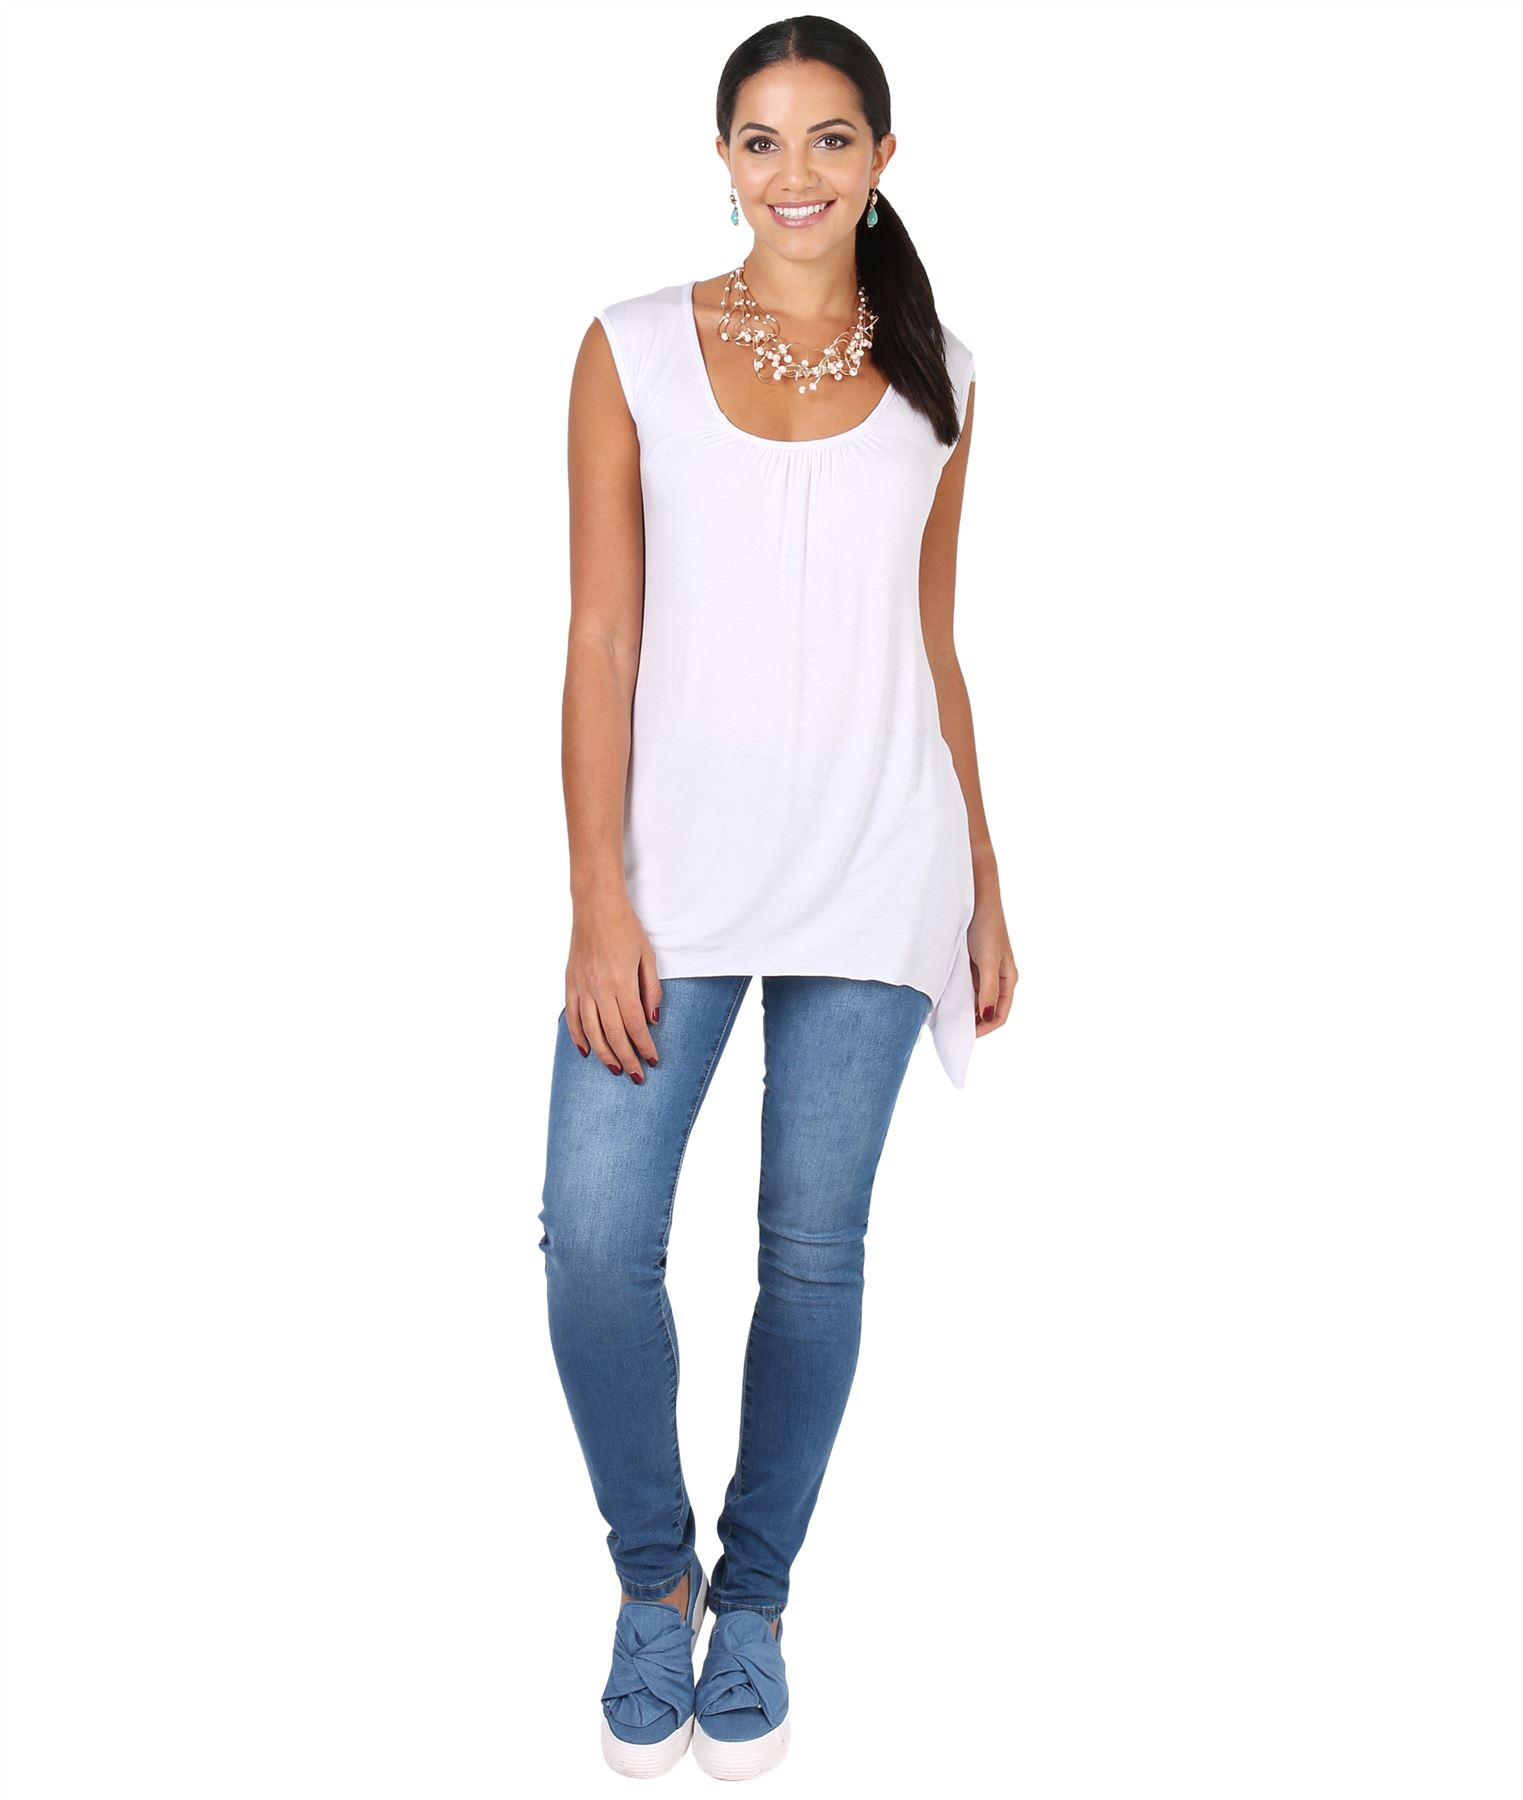 Women-Long-Top-Sleeveless-Pleated-Tee-Shirt-Tunic-Jersey-Stretch-Loose-Fit thumbnail 31